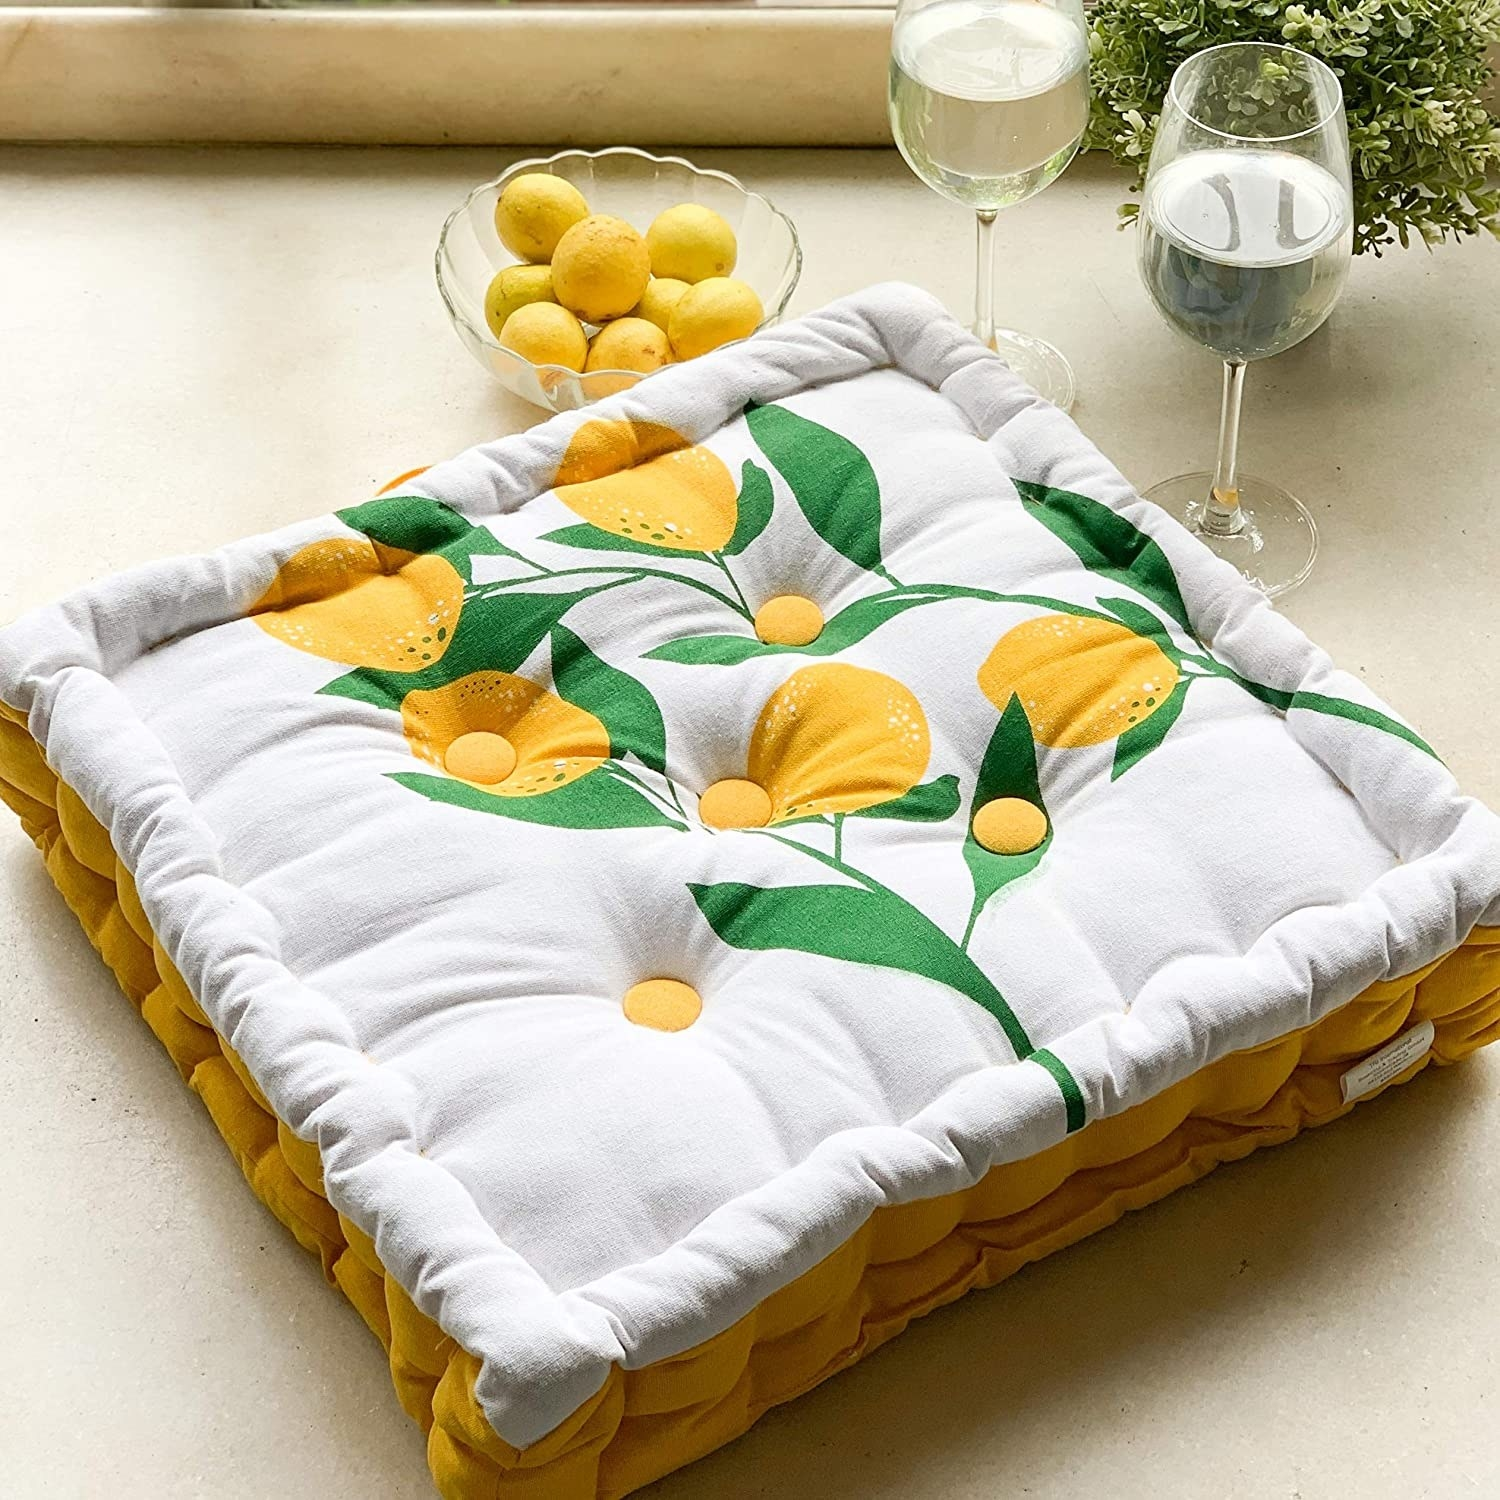 Floor cushion kept beside wine glasses filled with water and a bowl of lemons.